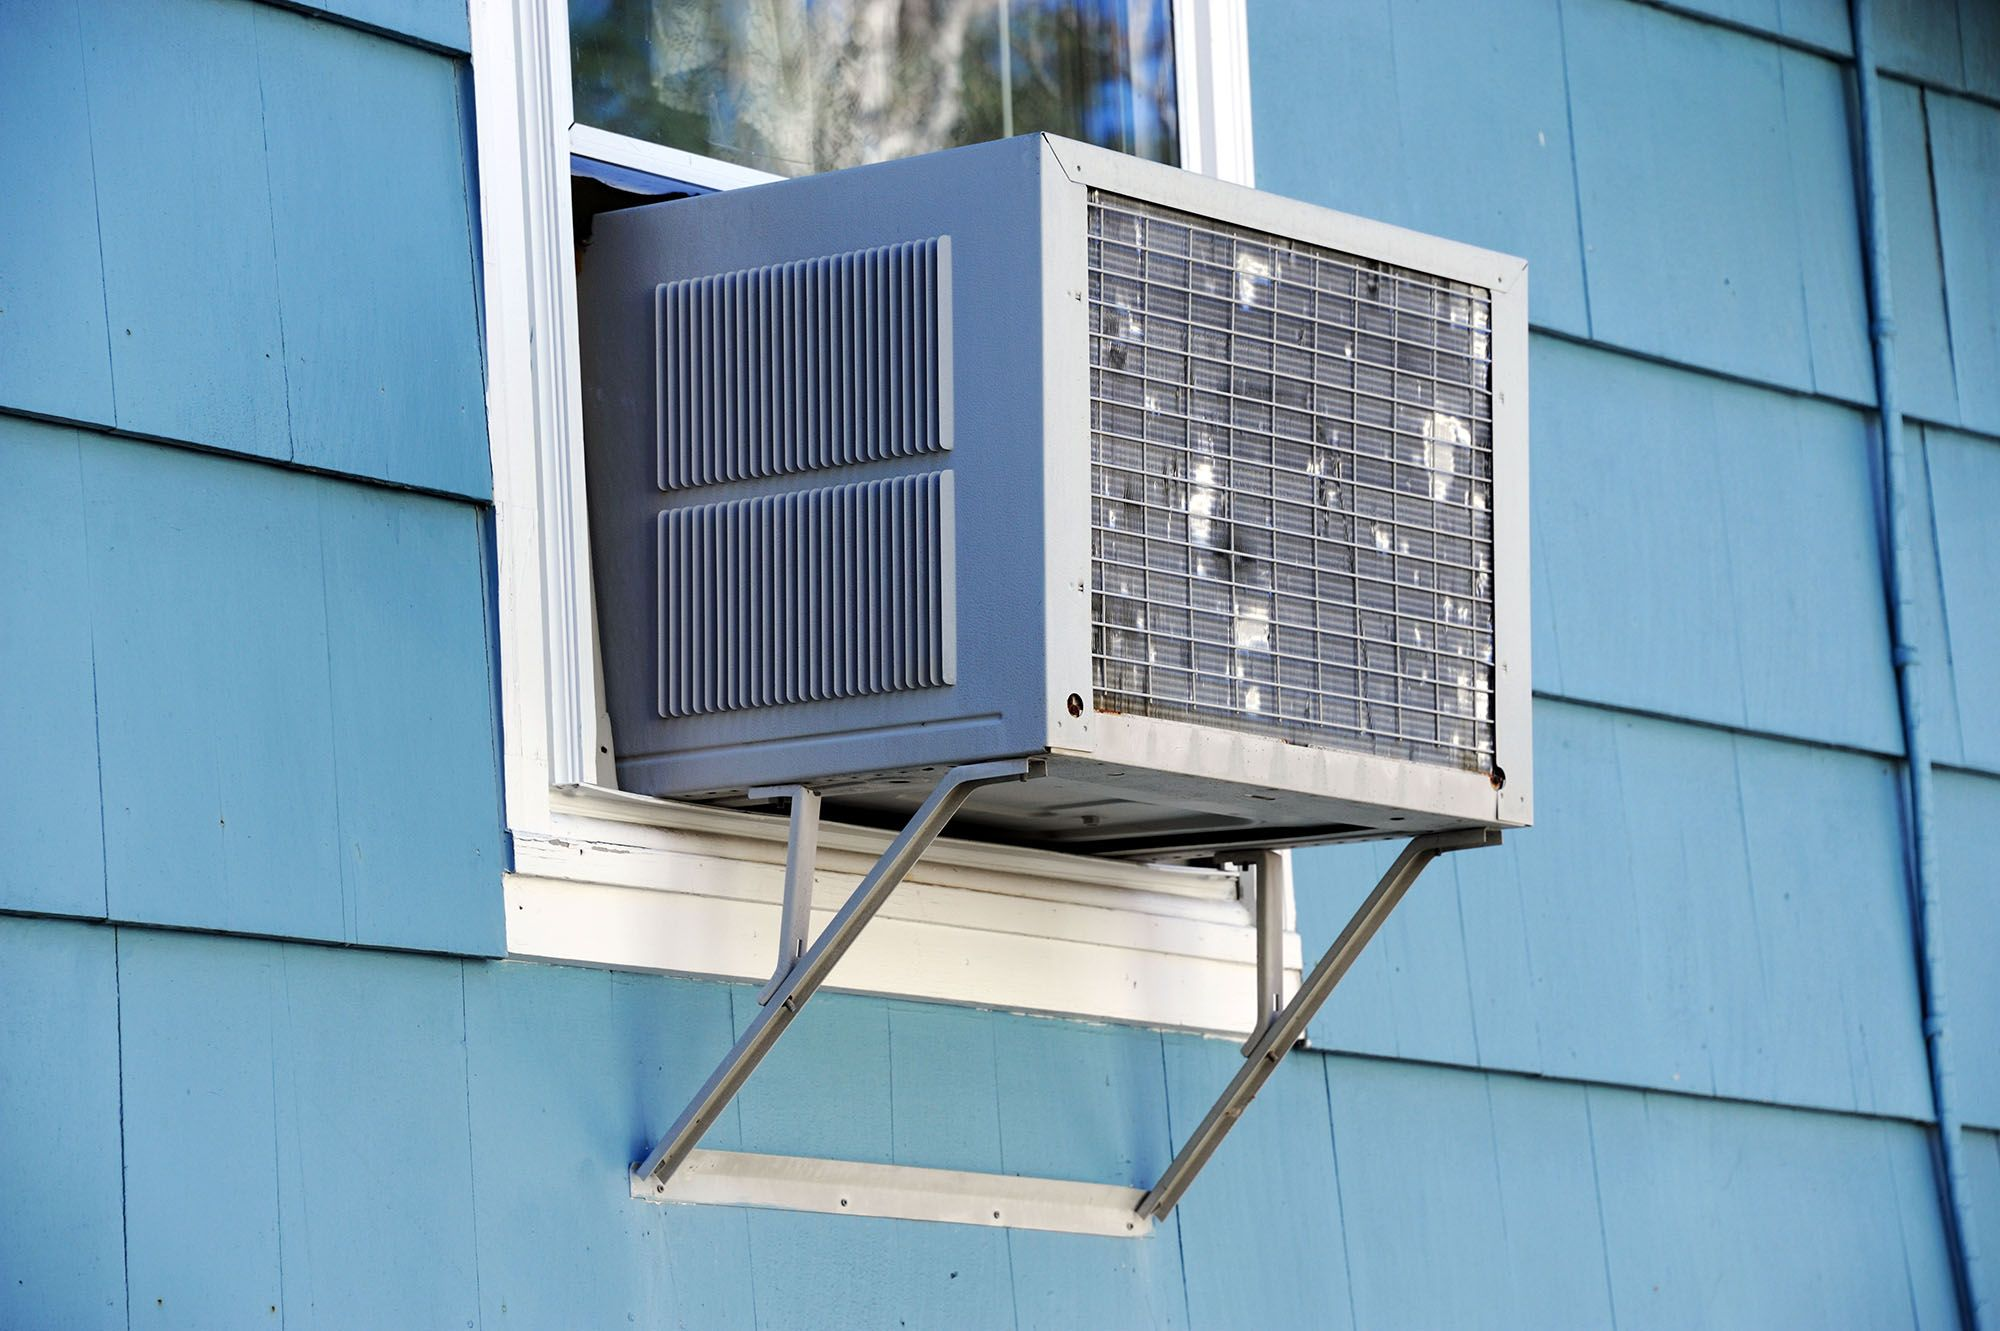 Window Air Conditioning Unit Ductless Mini-Split Central System Options